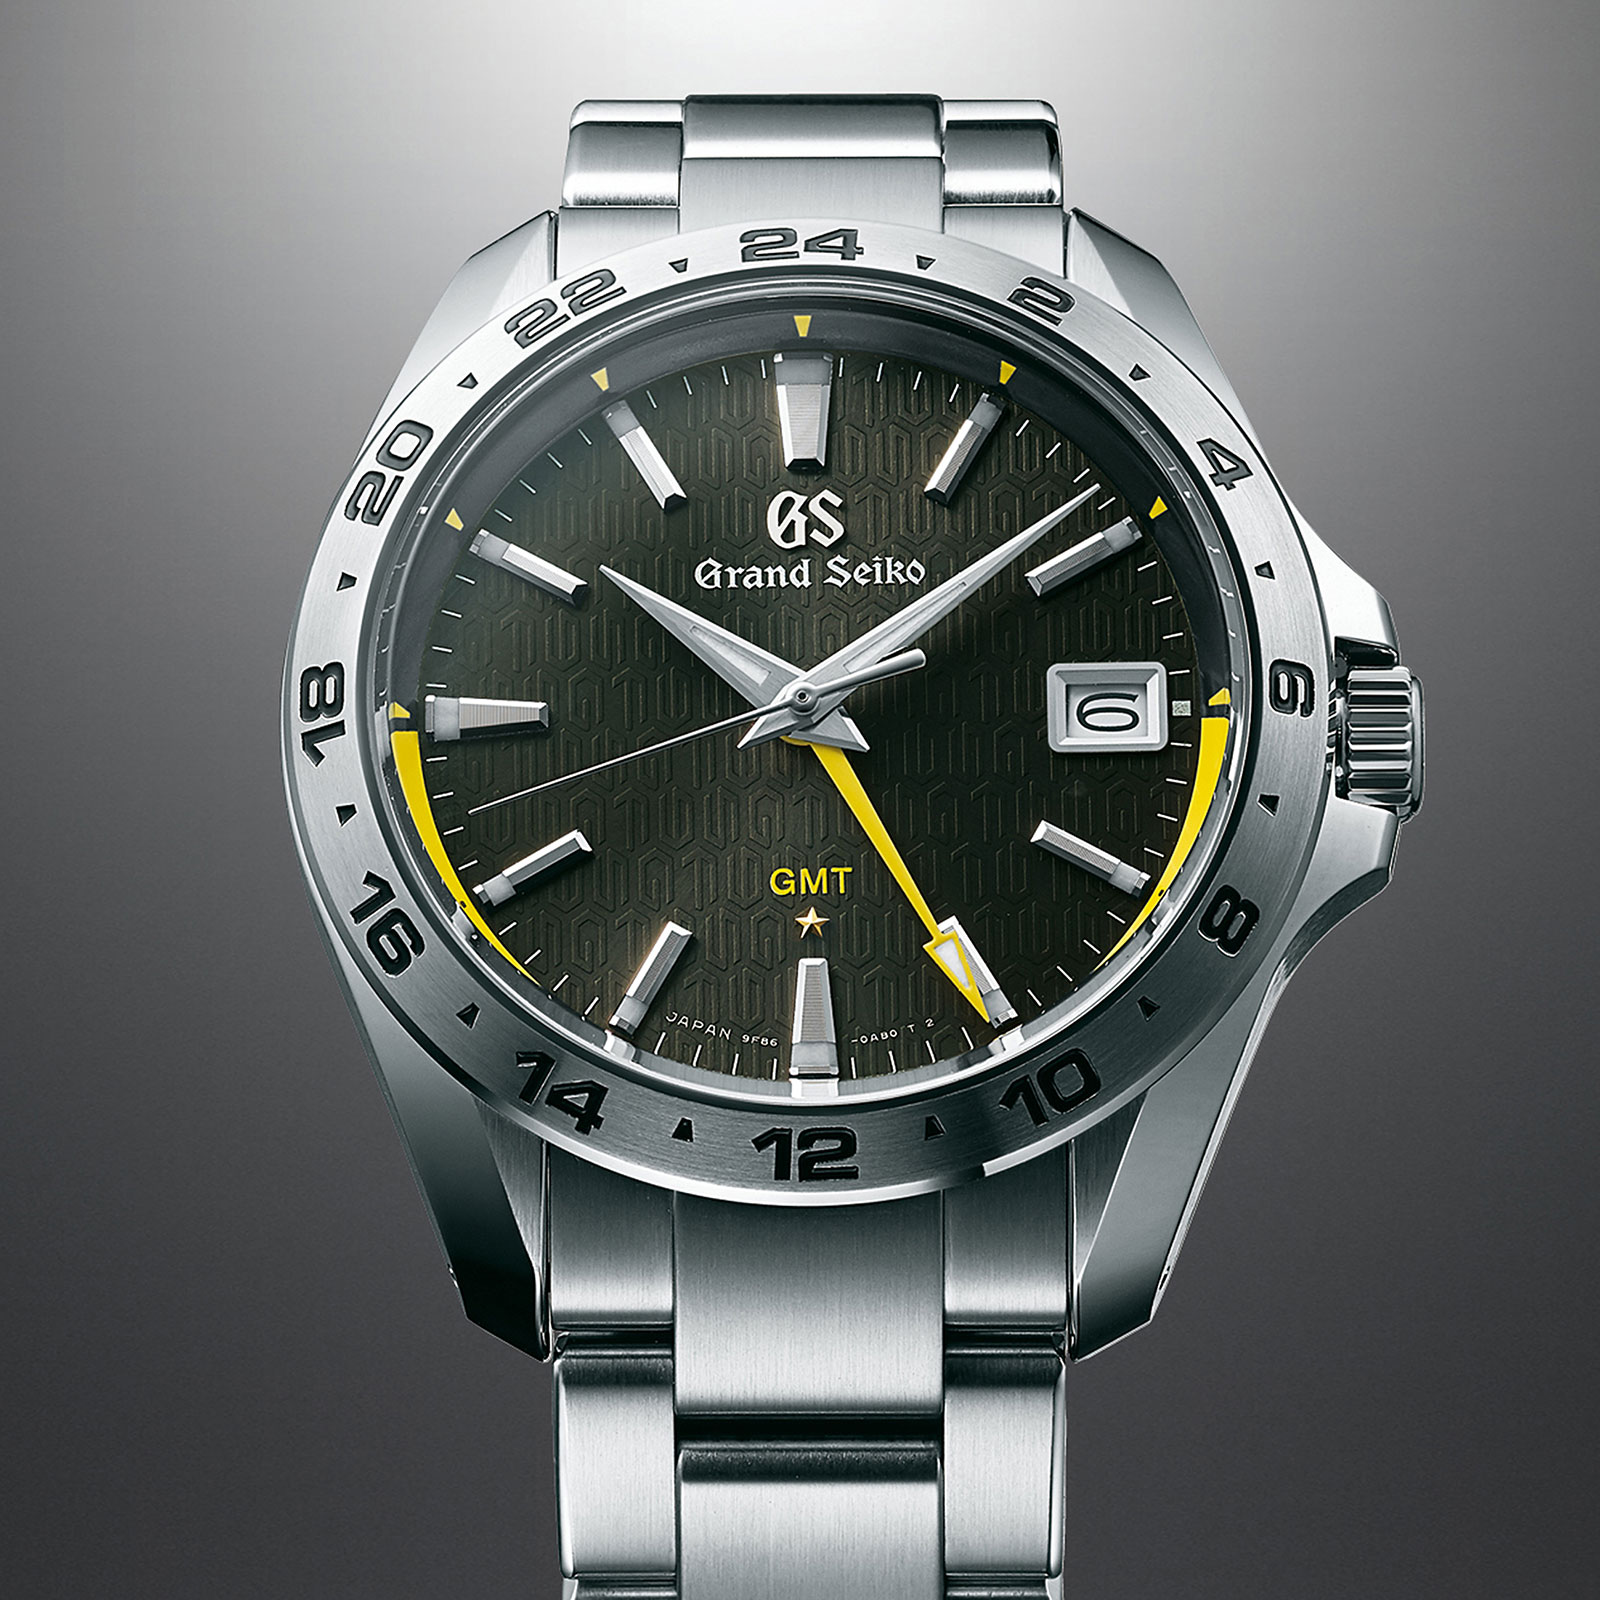 Grand Seiko 9F quartz GMT SBGN001 1